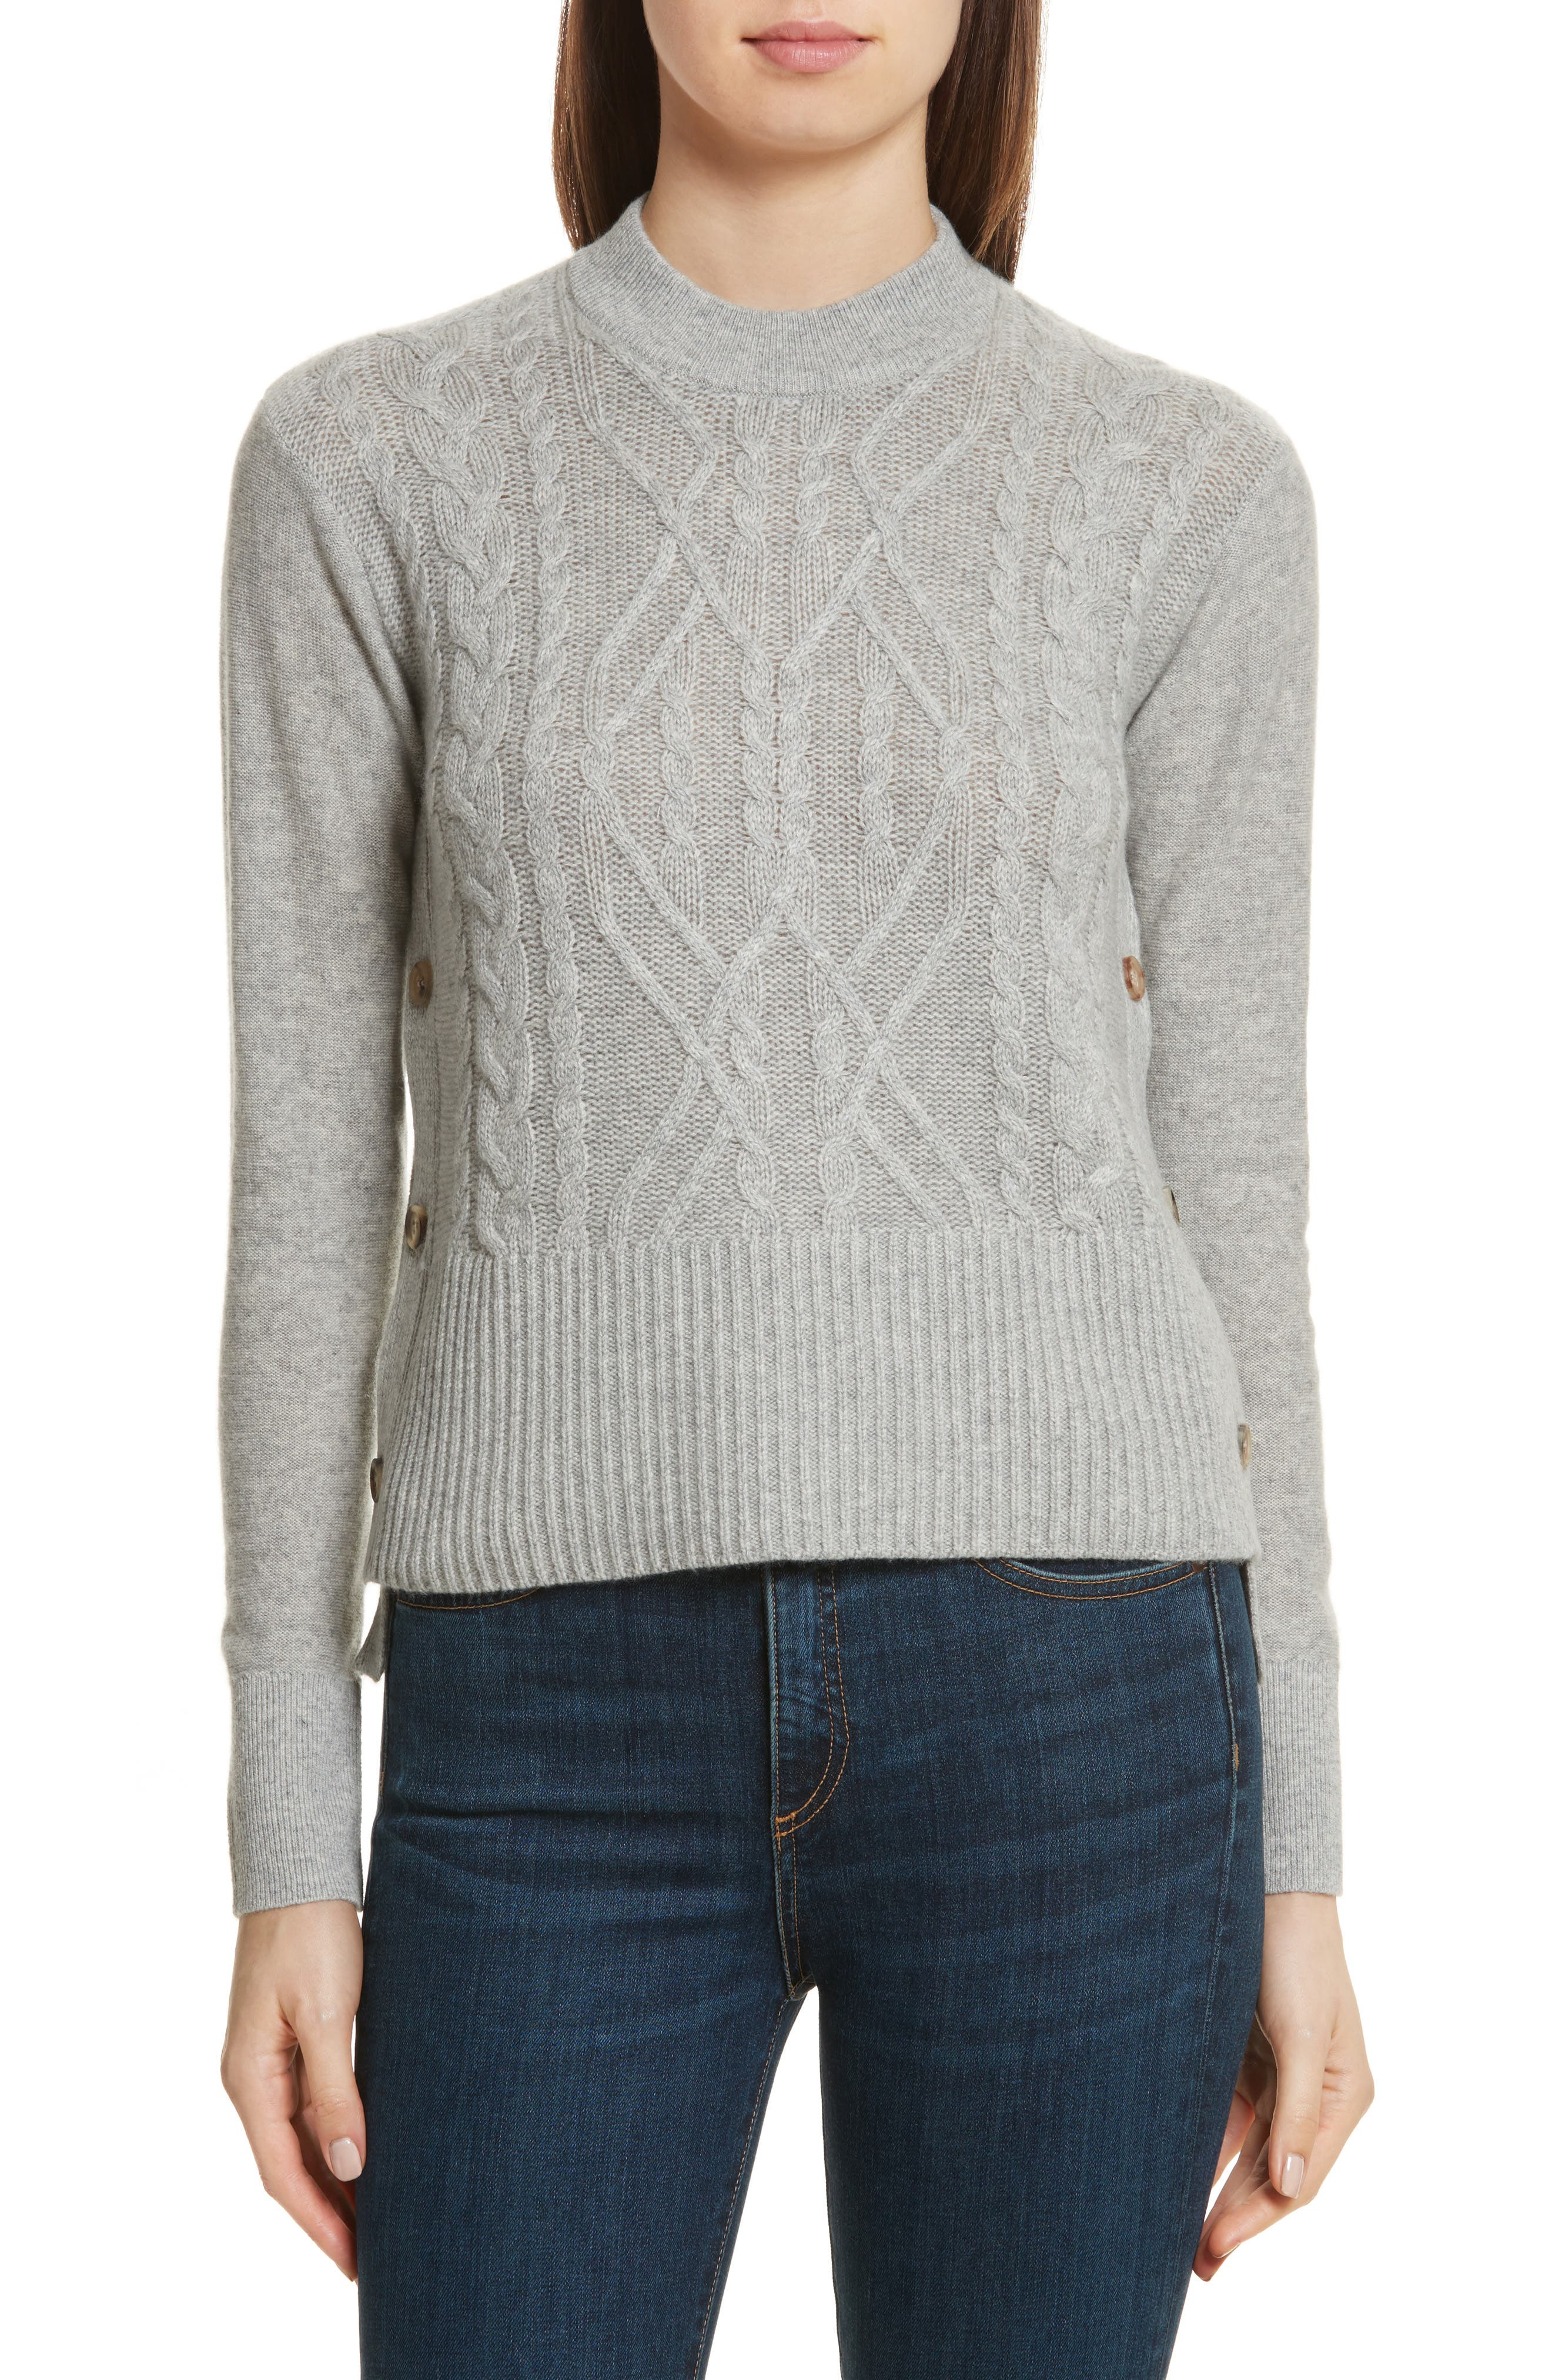 Kenna Cashmere Sweater,                             Main thumbnail 1, color,                             Grey